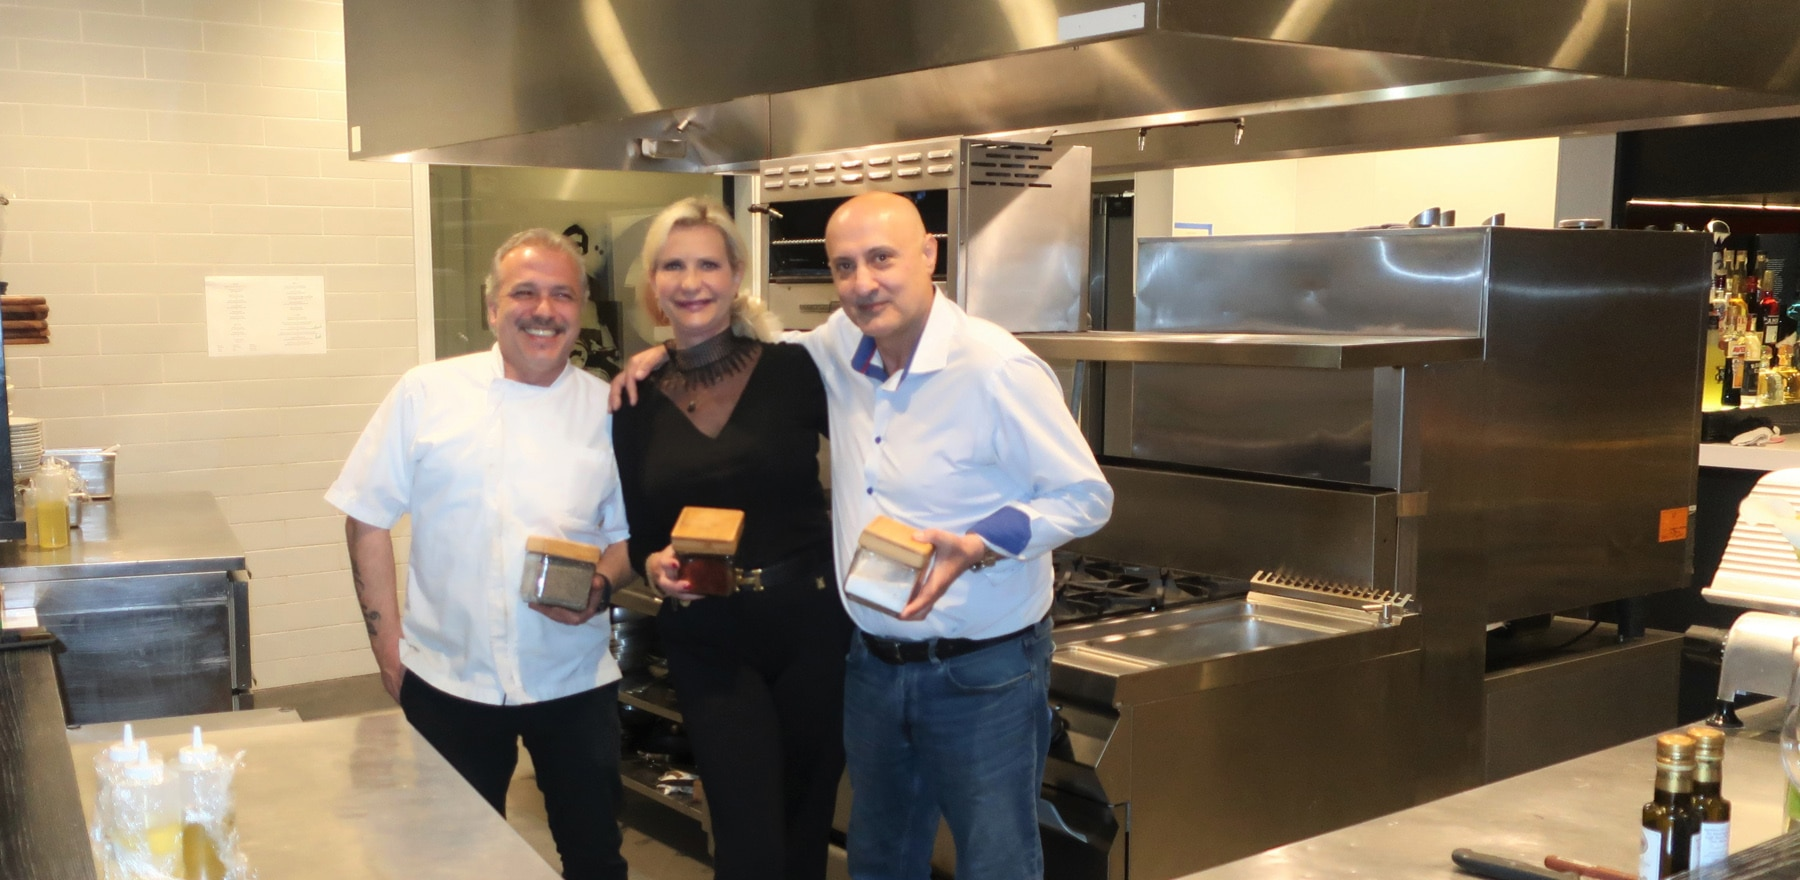 Chef Emidio Tidu, restaurateur Stelian Tasu in the kitchen with Sophie Gayot